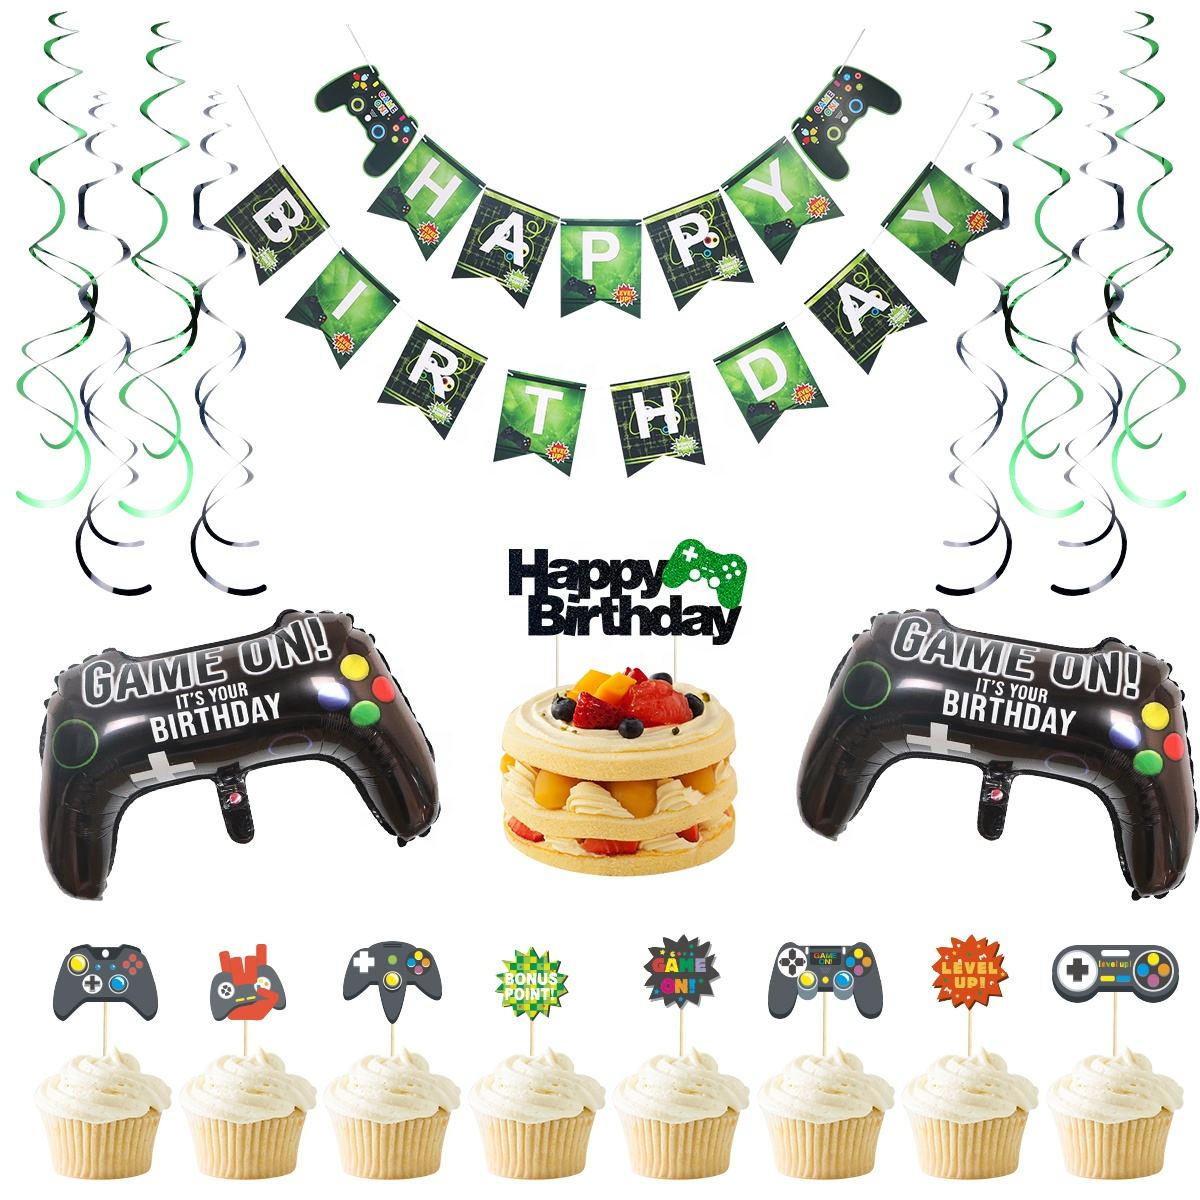 Xiamen Stone New Original Design Video Game Party Birthday Party Supplies, Fiesta De Cumpleaos, Baby Shower Party Supplier